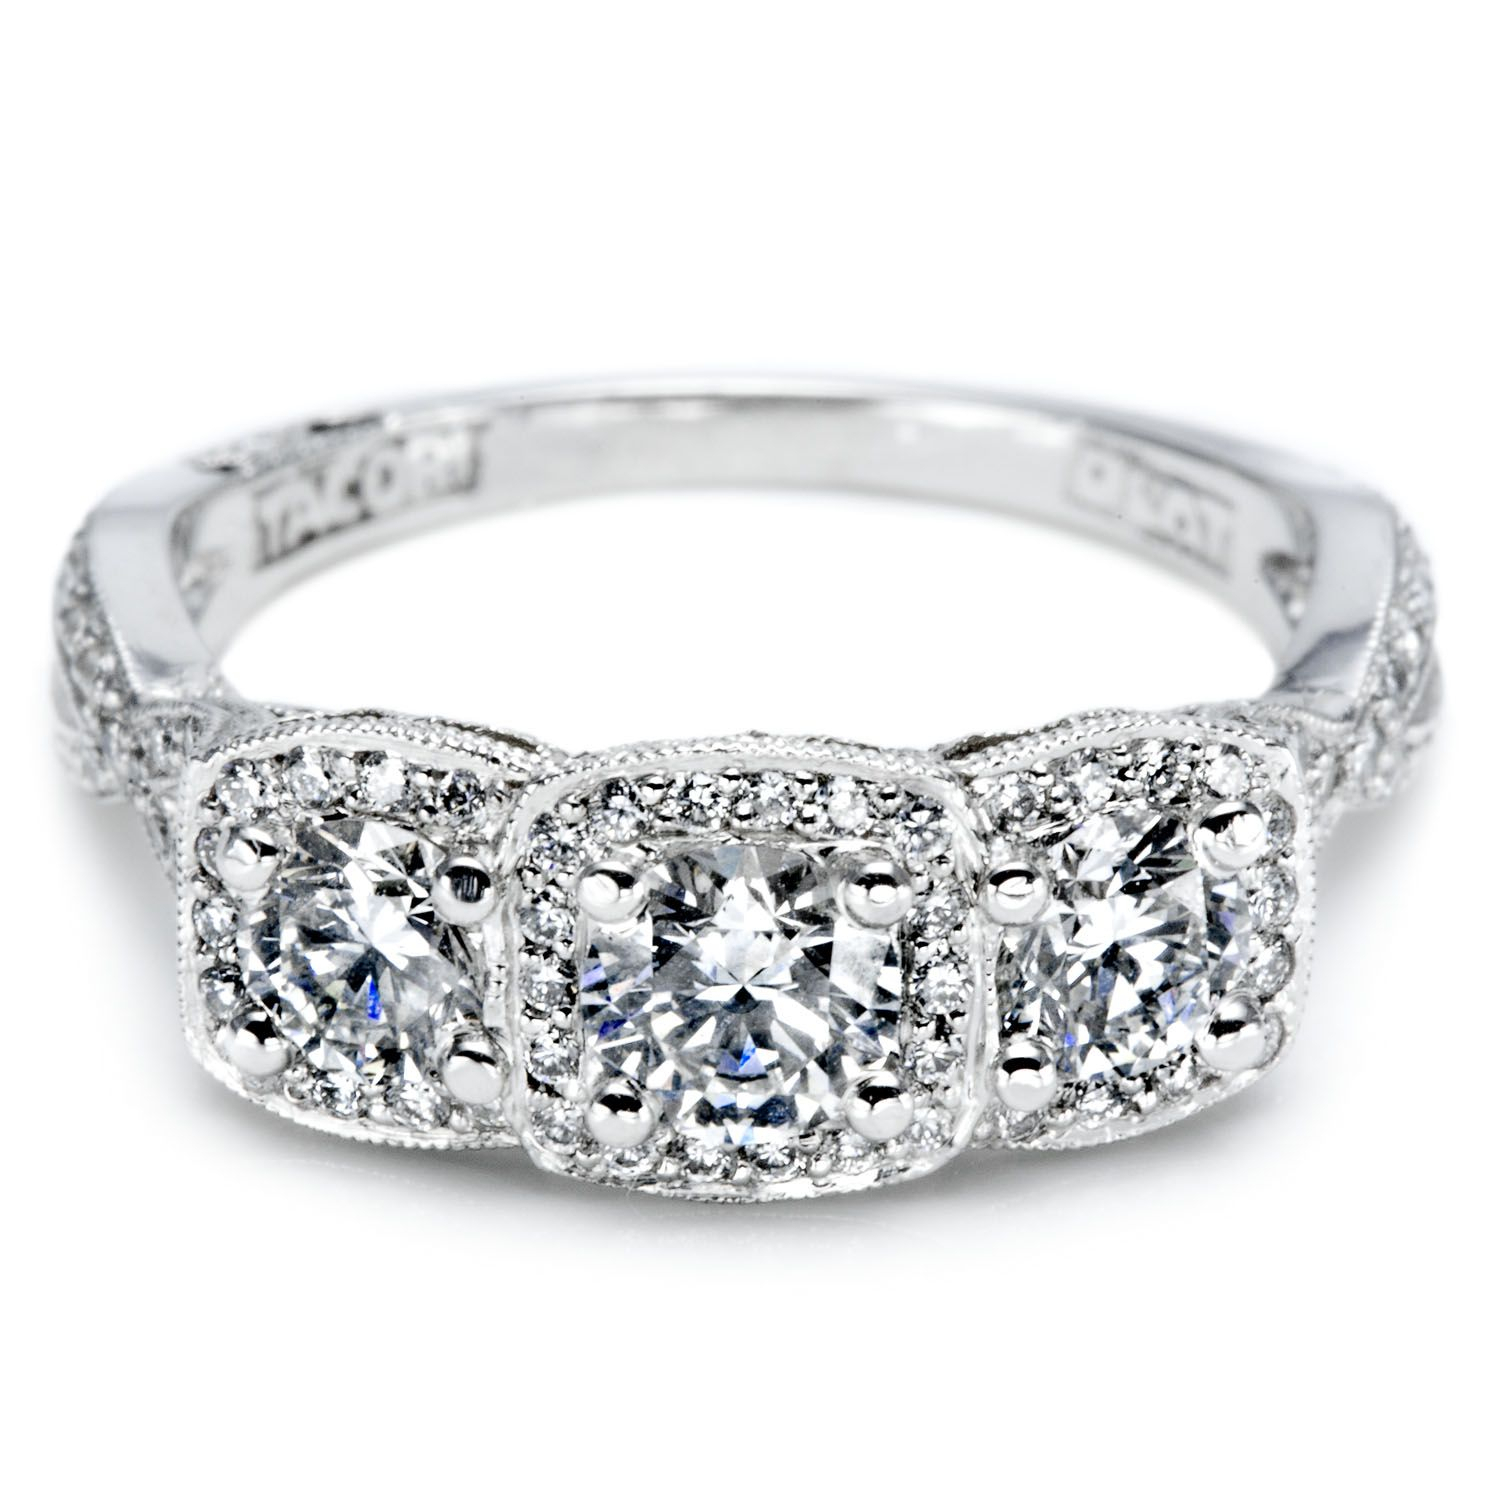 Unique Diamond Anniversary Rings | View Some Examples Of In Most Current Diamond Accent Channel Anniversary Bands In White Gold (View 21 of 25)